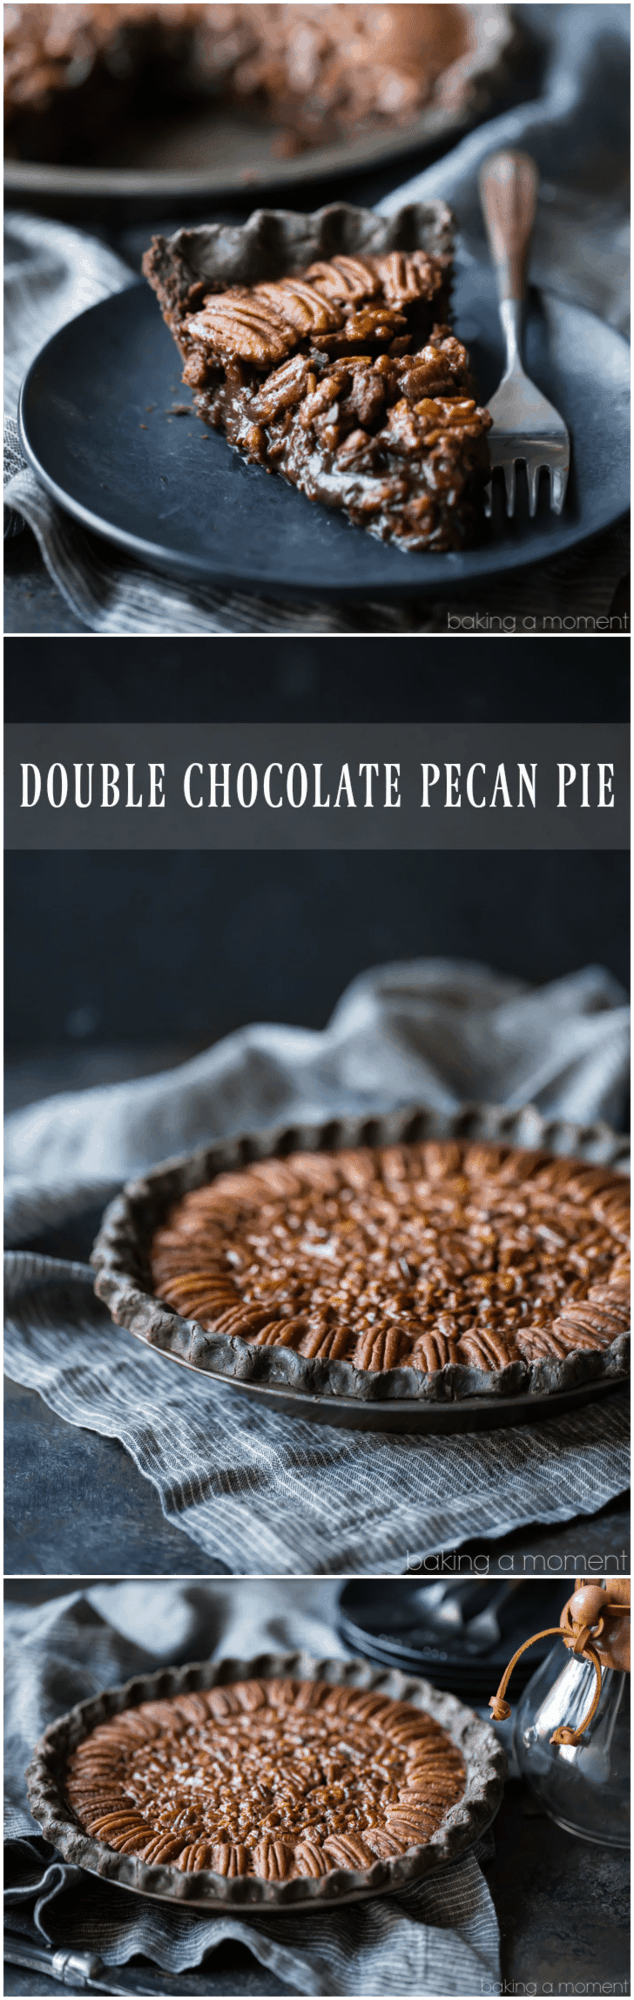 Double Chocolate Pecan Pie So decadent Loved the flaky chocolate crust and the filling tastes just like a candy bar